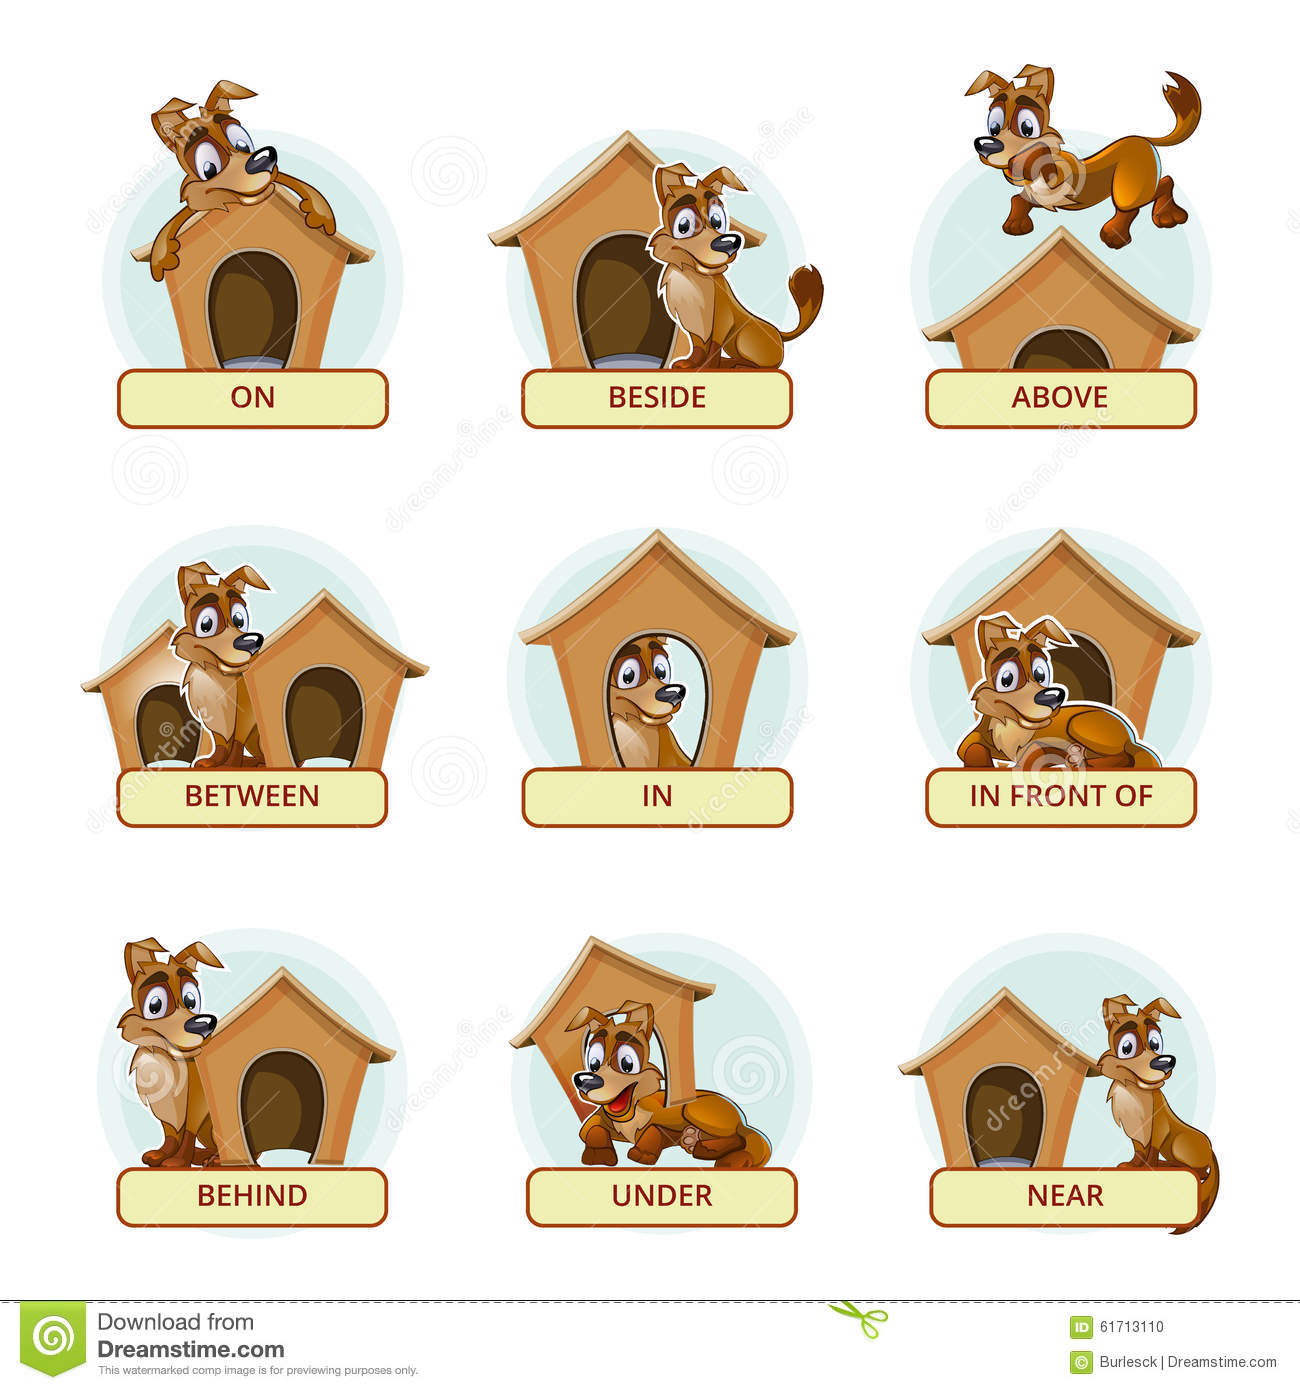 worksheet Spanish Prepositions Worksheet prepositions of place colorful cartoon stock vector image 51841860 dog in different poses to illustrate photo